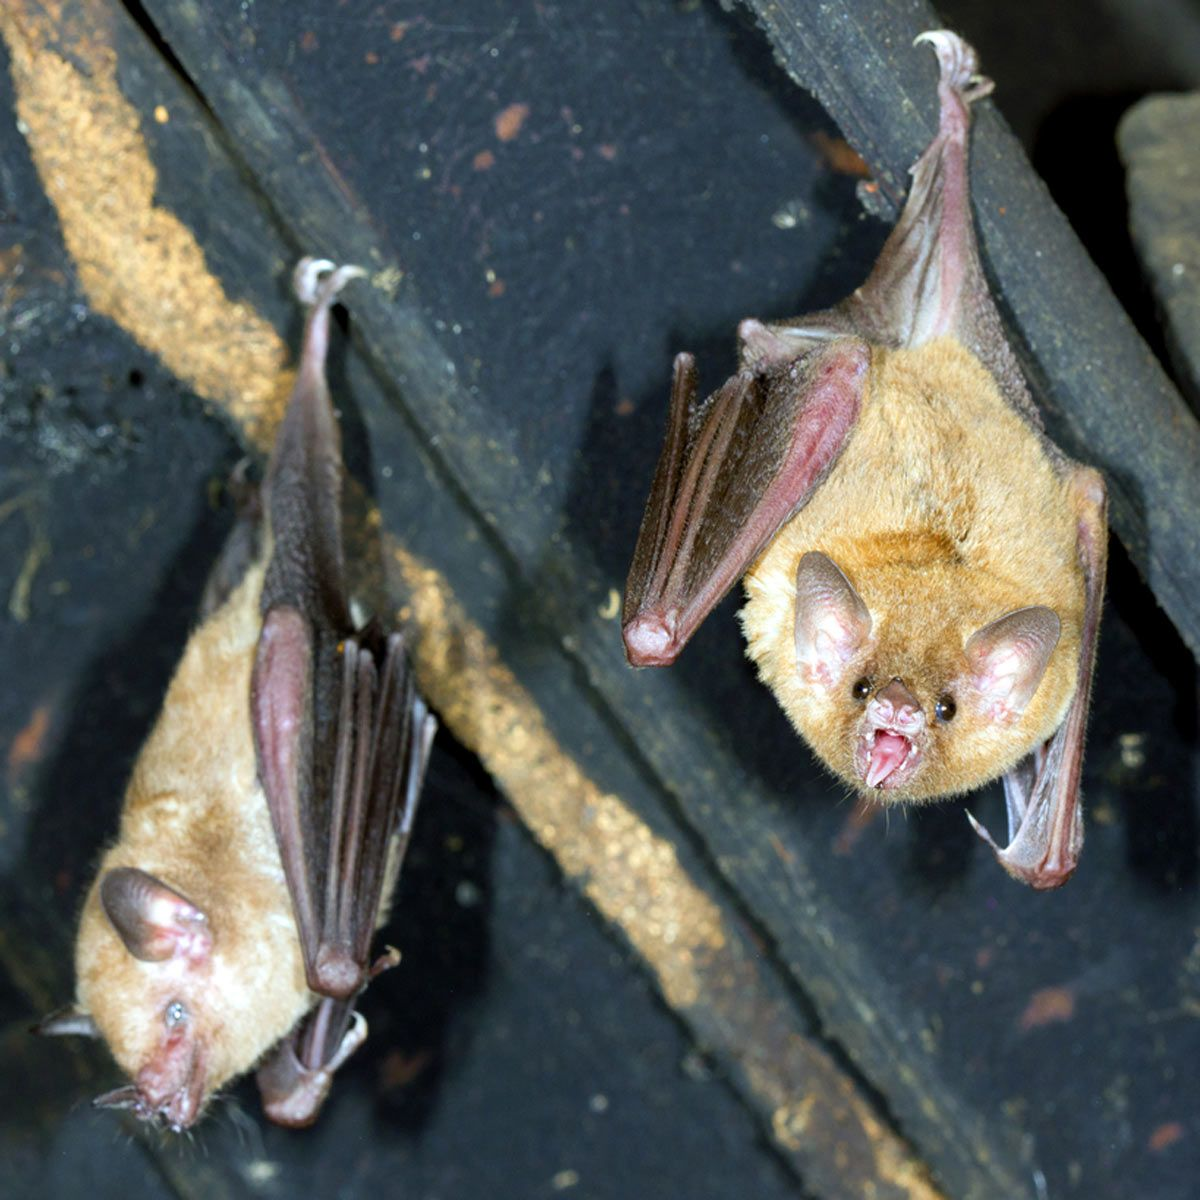 How To Get Rid Of Bats In Your Attic Getting Rid Of Bats Pest Control Bats In Attic